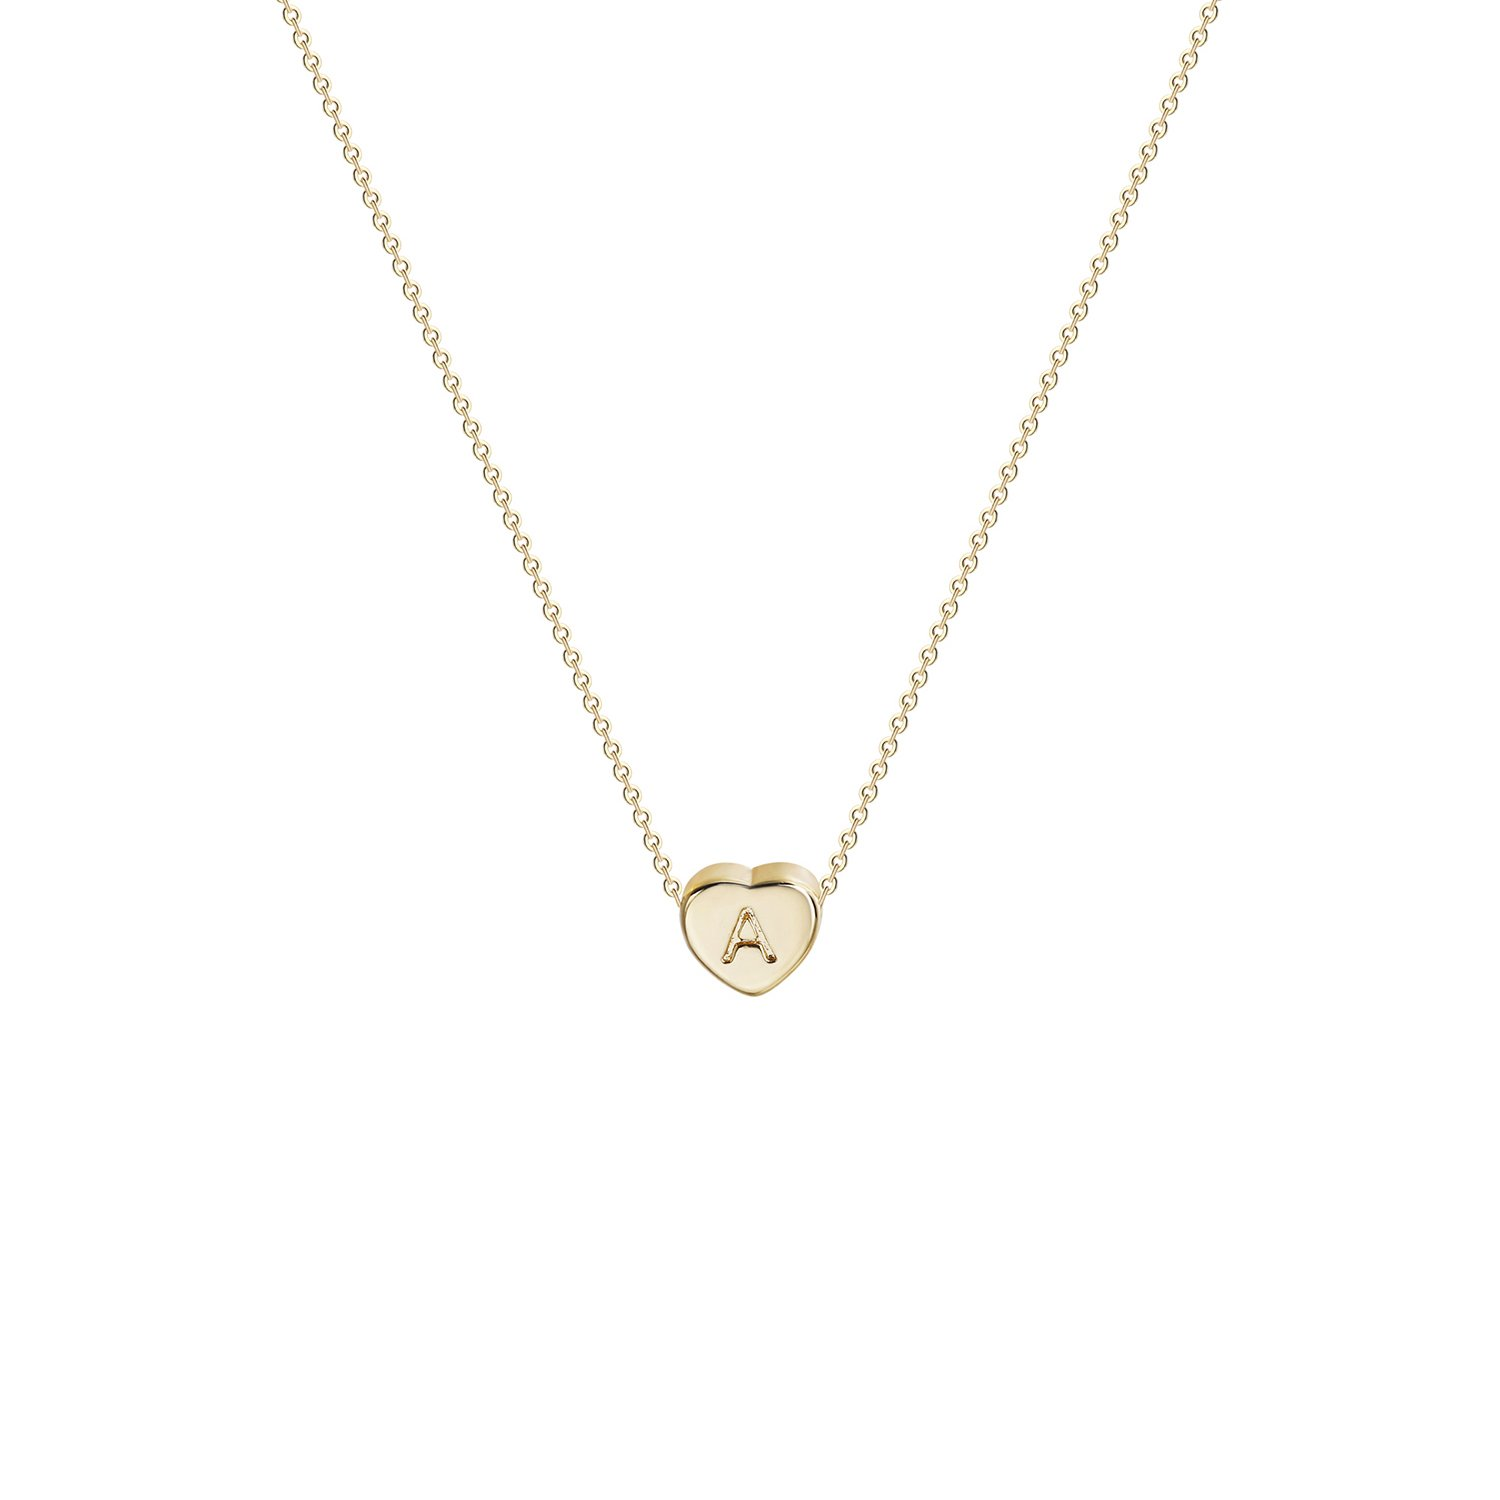 Tiny Gold Initial Heart Necklace-14K Gold Filled Handmade Dainty Personalized Heart Choker Necklace for Women Letter A by Fettero